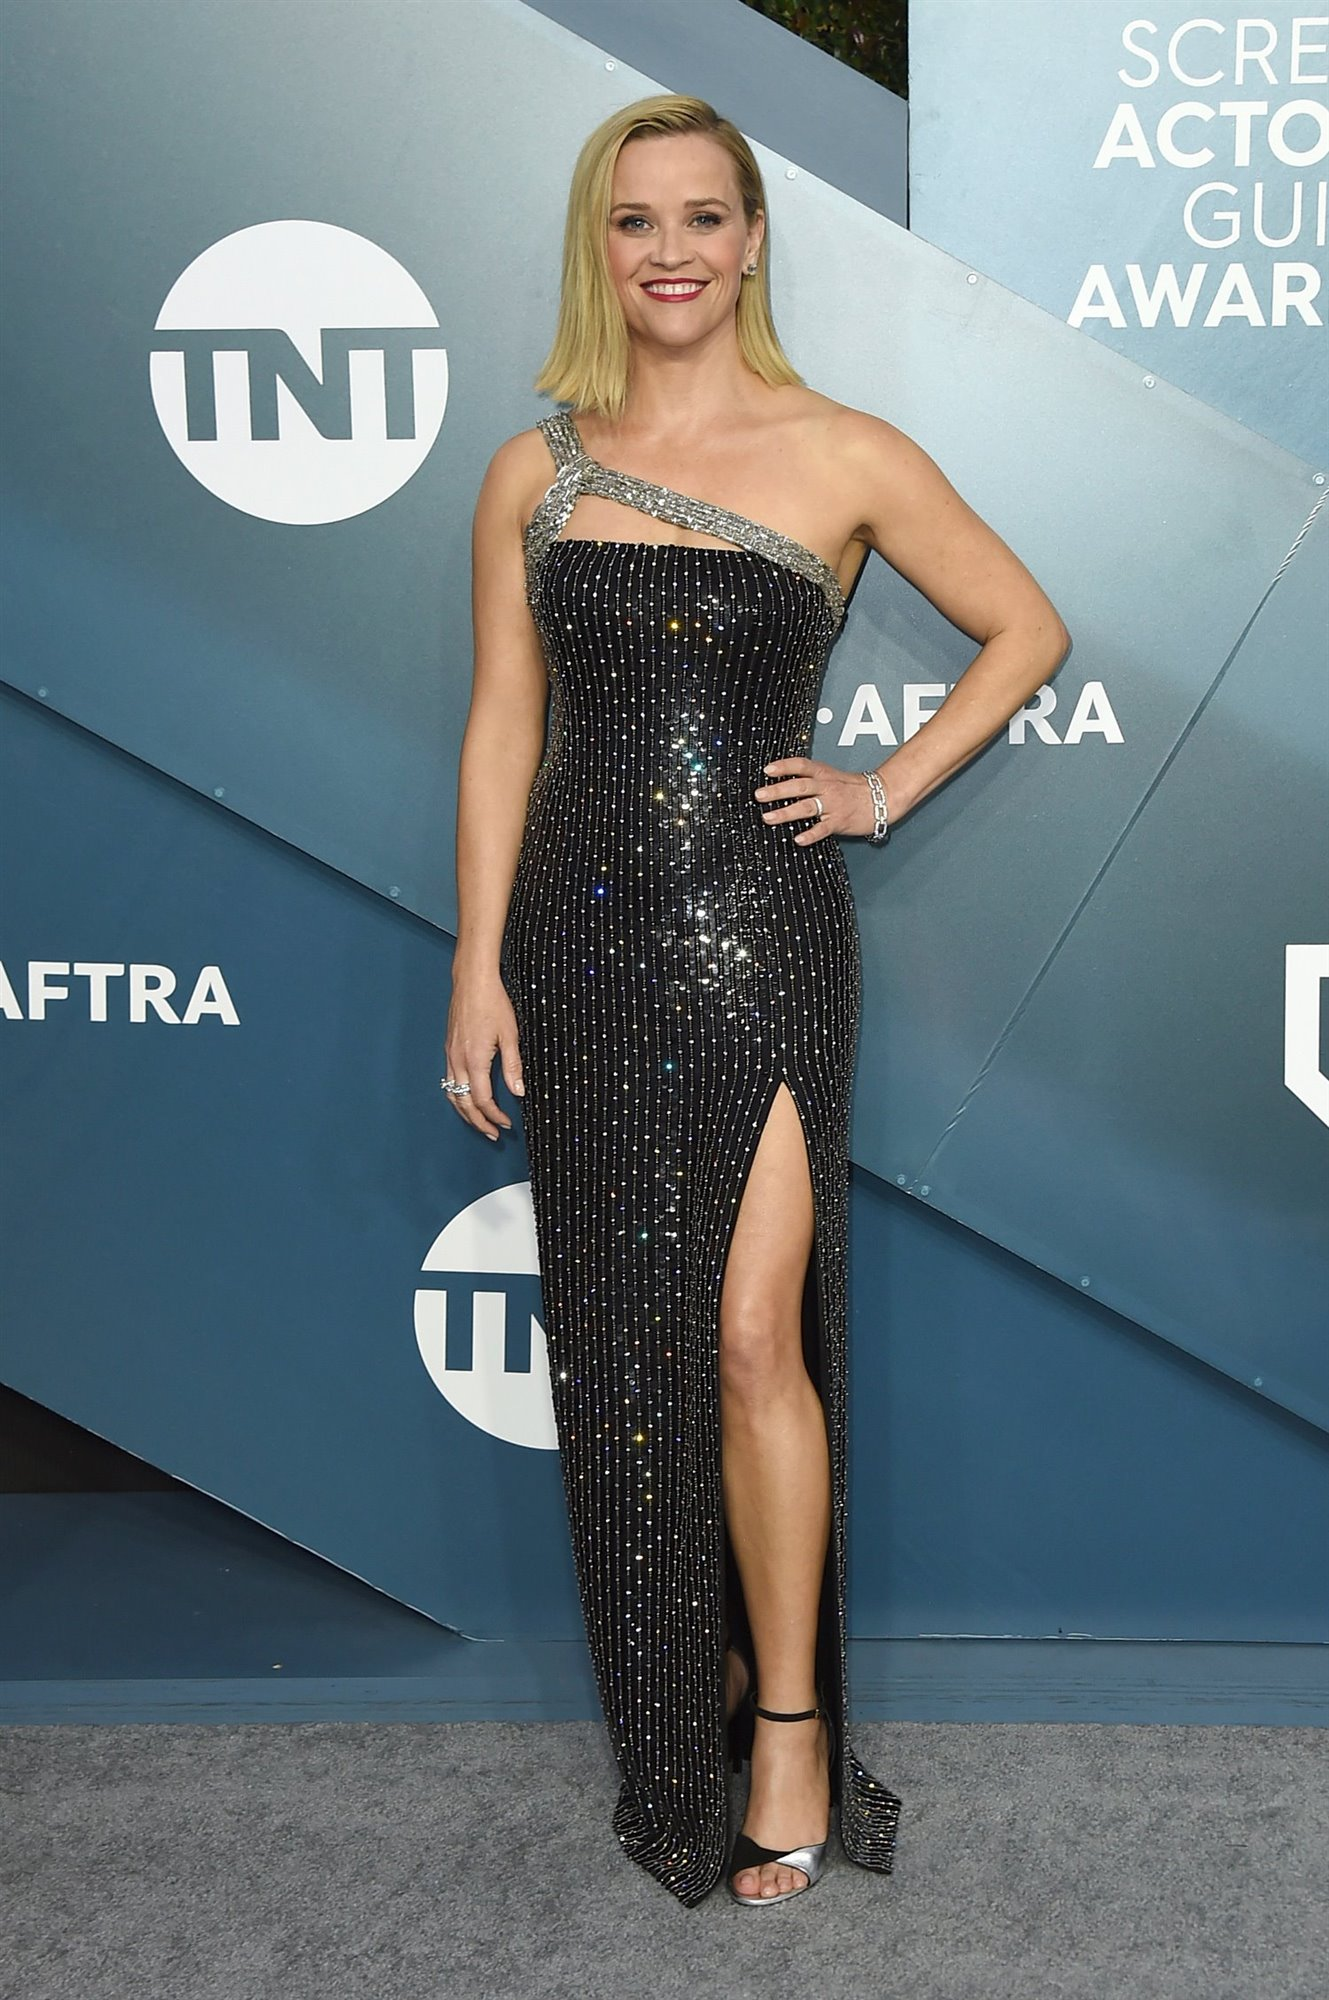 reese-witherspoon. Reese Witherspoon